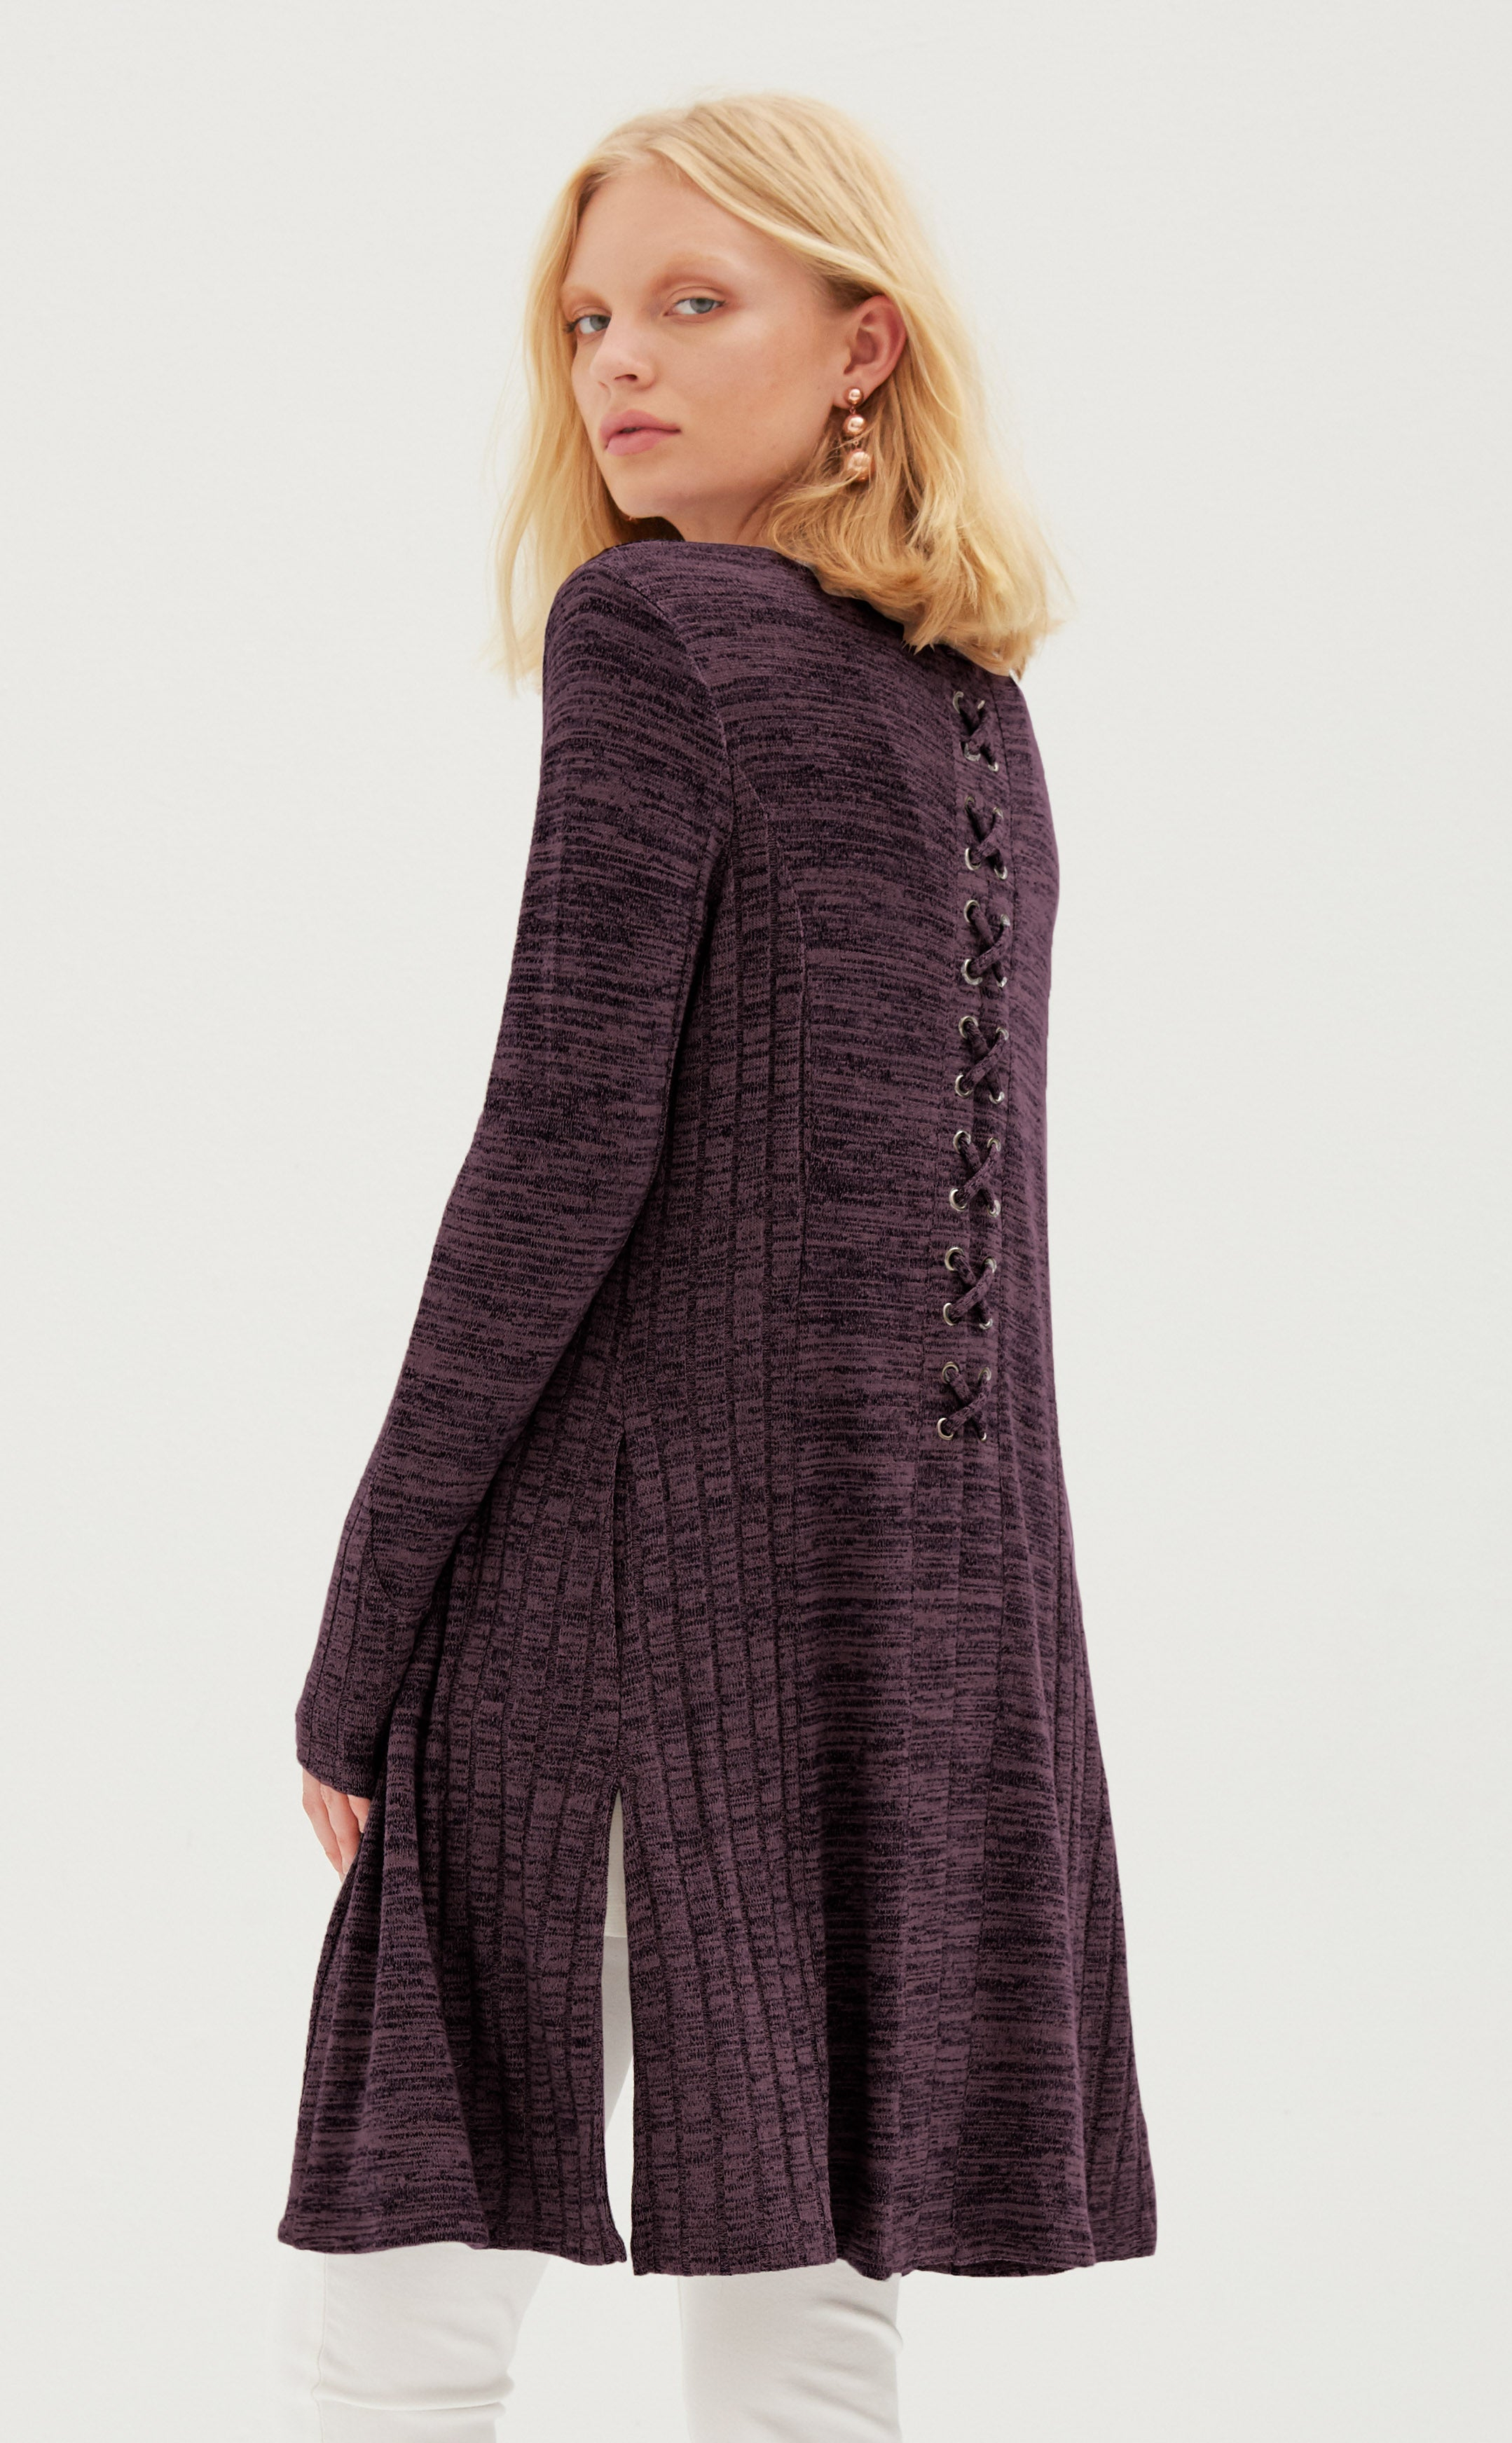 Lace Back Duster Cardigan